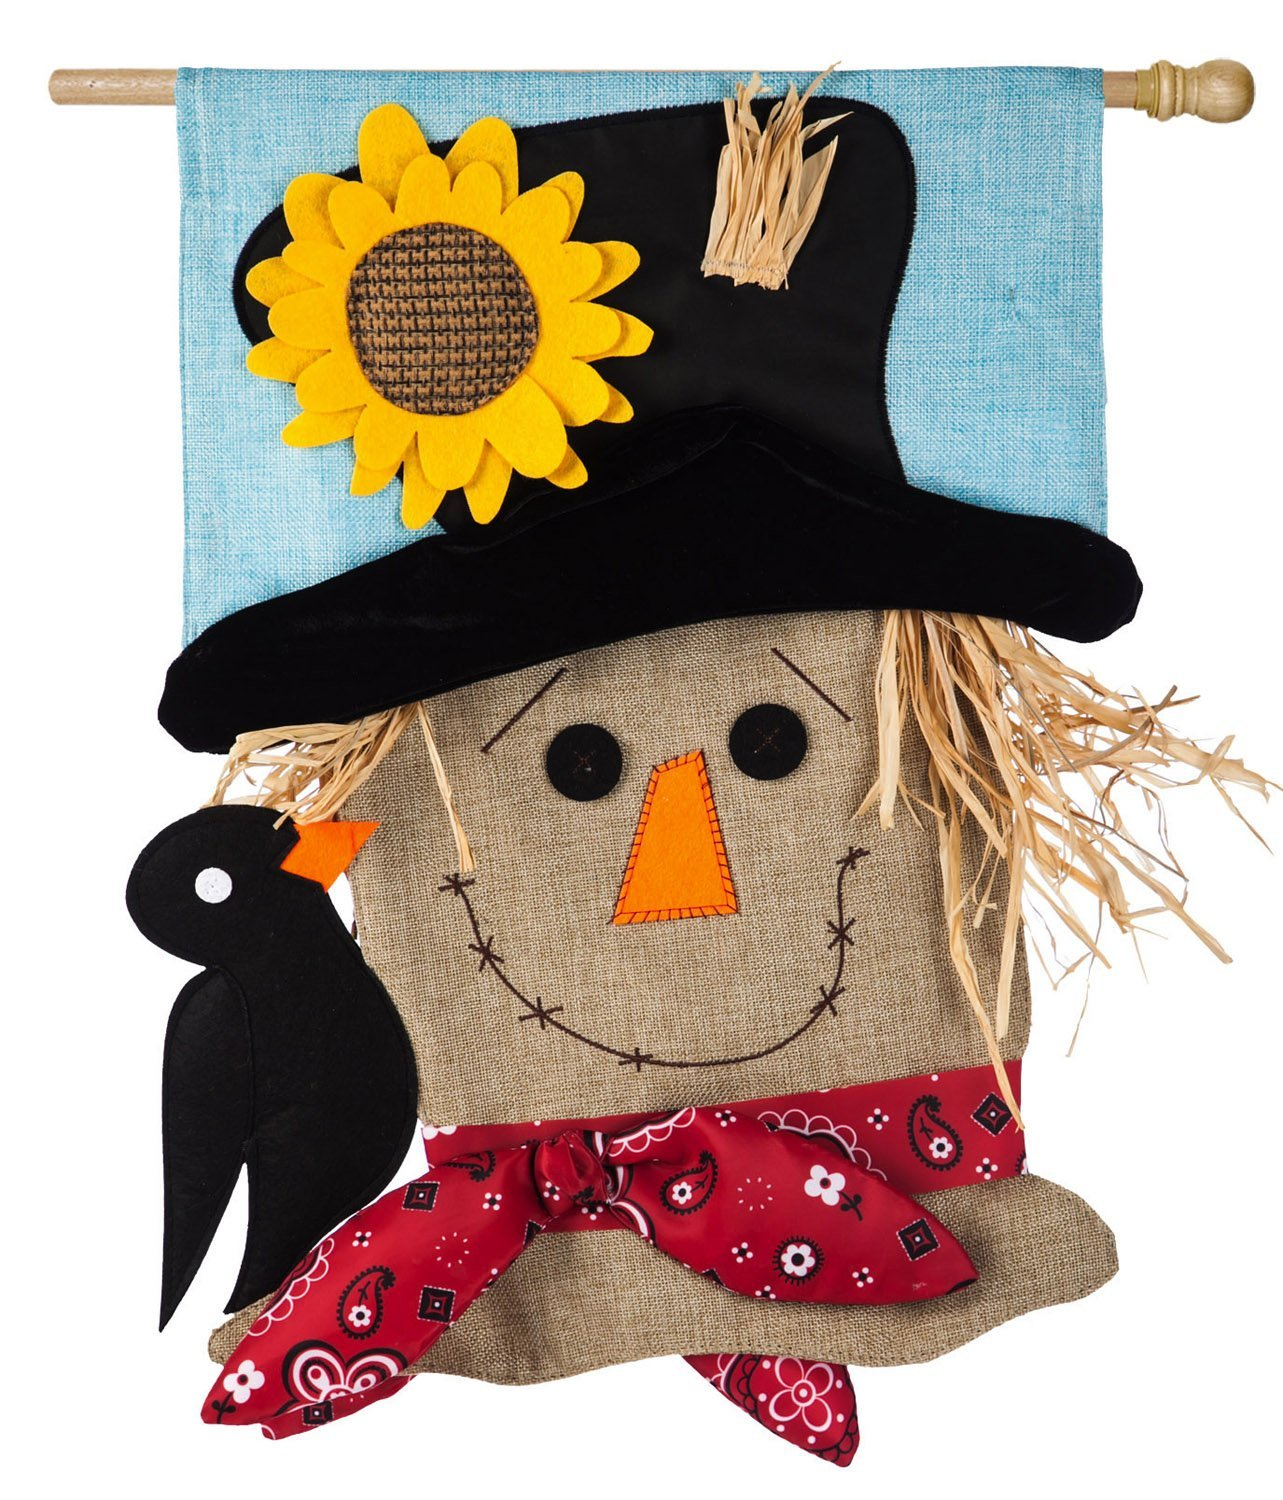 Evergreen Scarecrow Season Burlap House Flag 28 X 44 Inches Welcome Guests To Your Home With This Detailed Garden Flag By Evergreen Flag From Usa Walmart Com Walmart Com